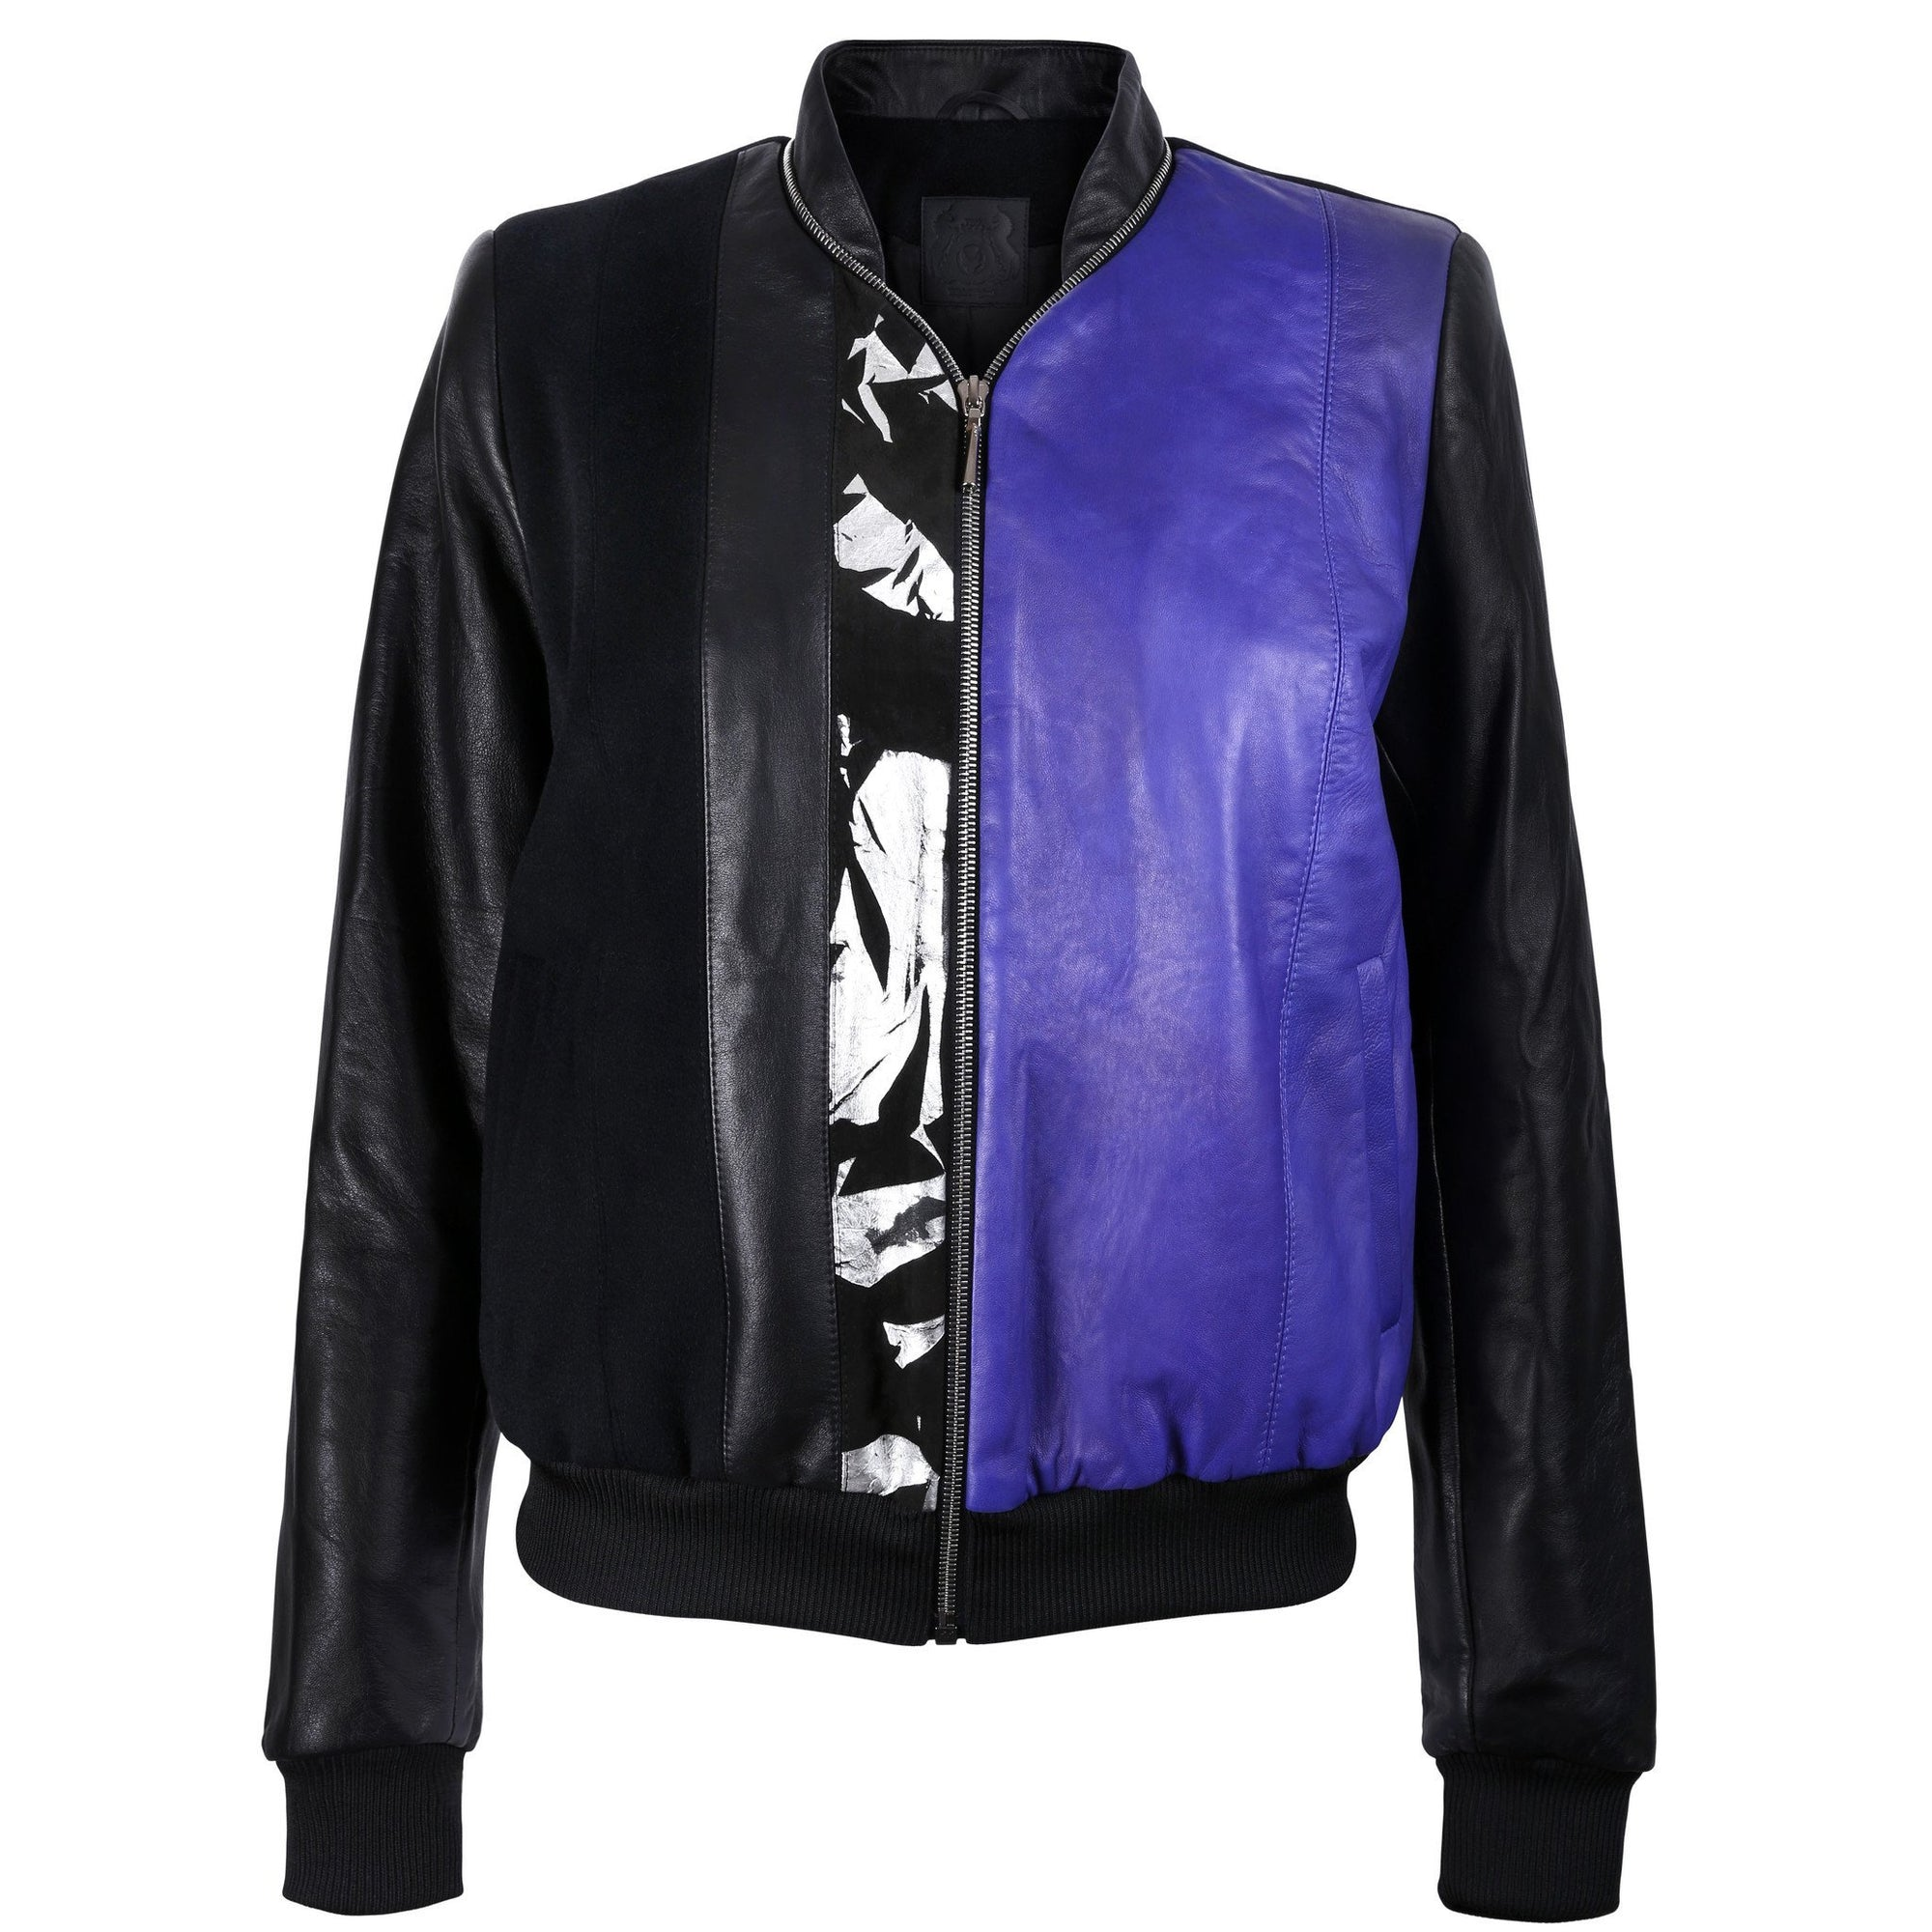 Black and Purple Leather Bomber Jacket with Silver Print Motif - VOLS & ORIGINAL